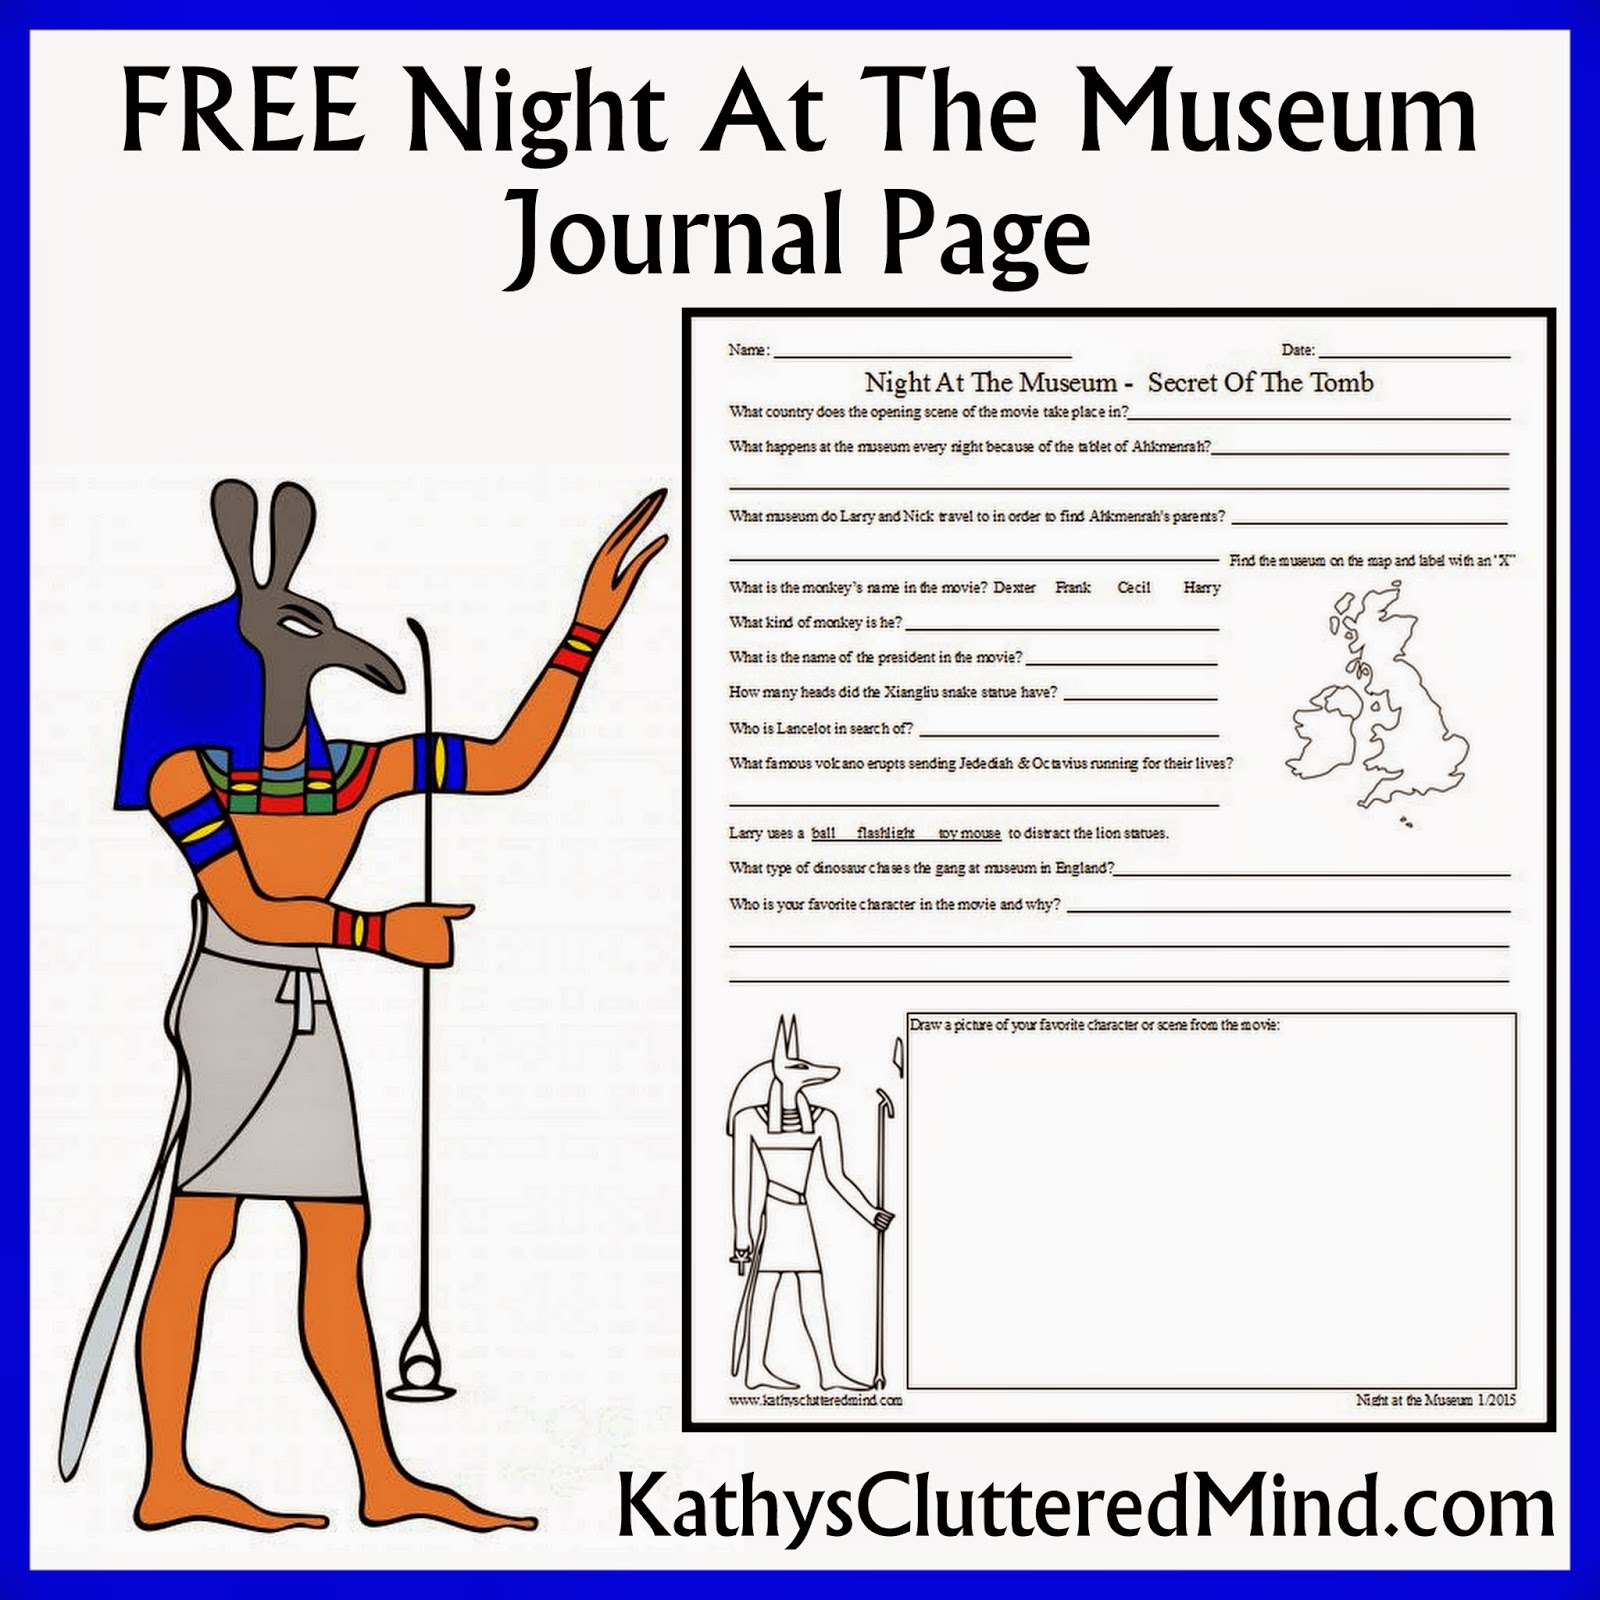 Kathys Cluttered Mind: Night At The Museum - Secret Of The Tomb ...